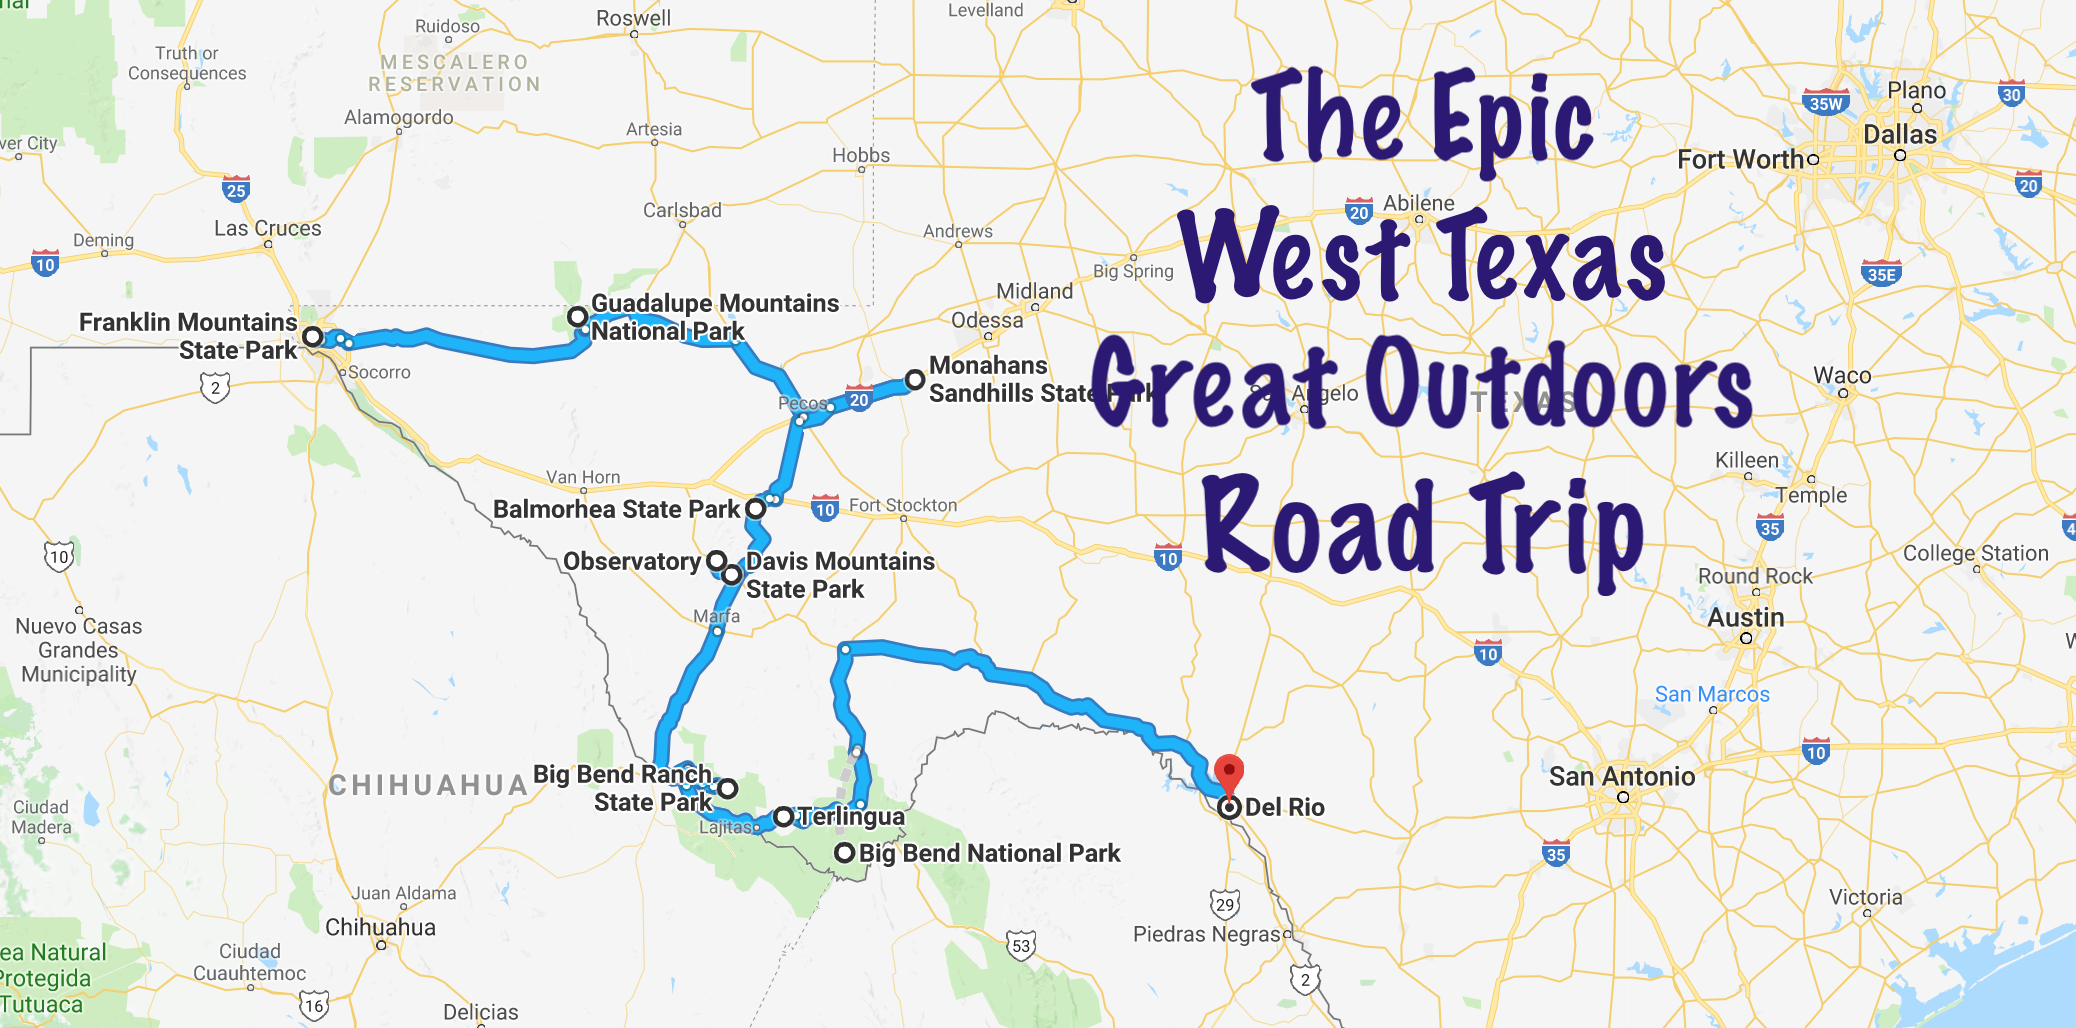 Take This Epic Road Trip To Experience Texas Great Outdoors Trip Road Trip College Road Trip